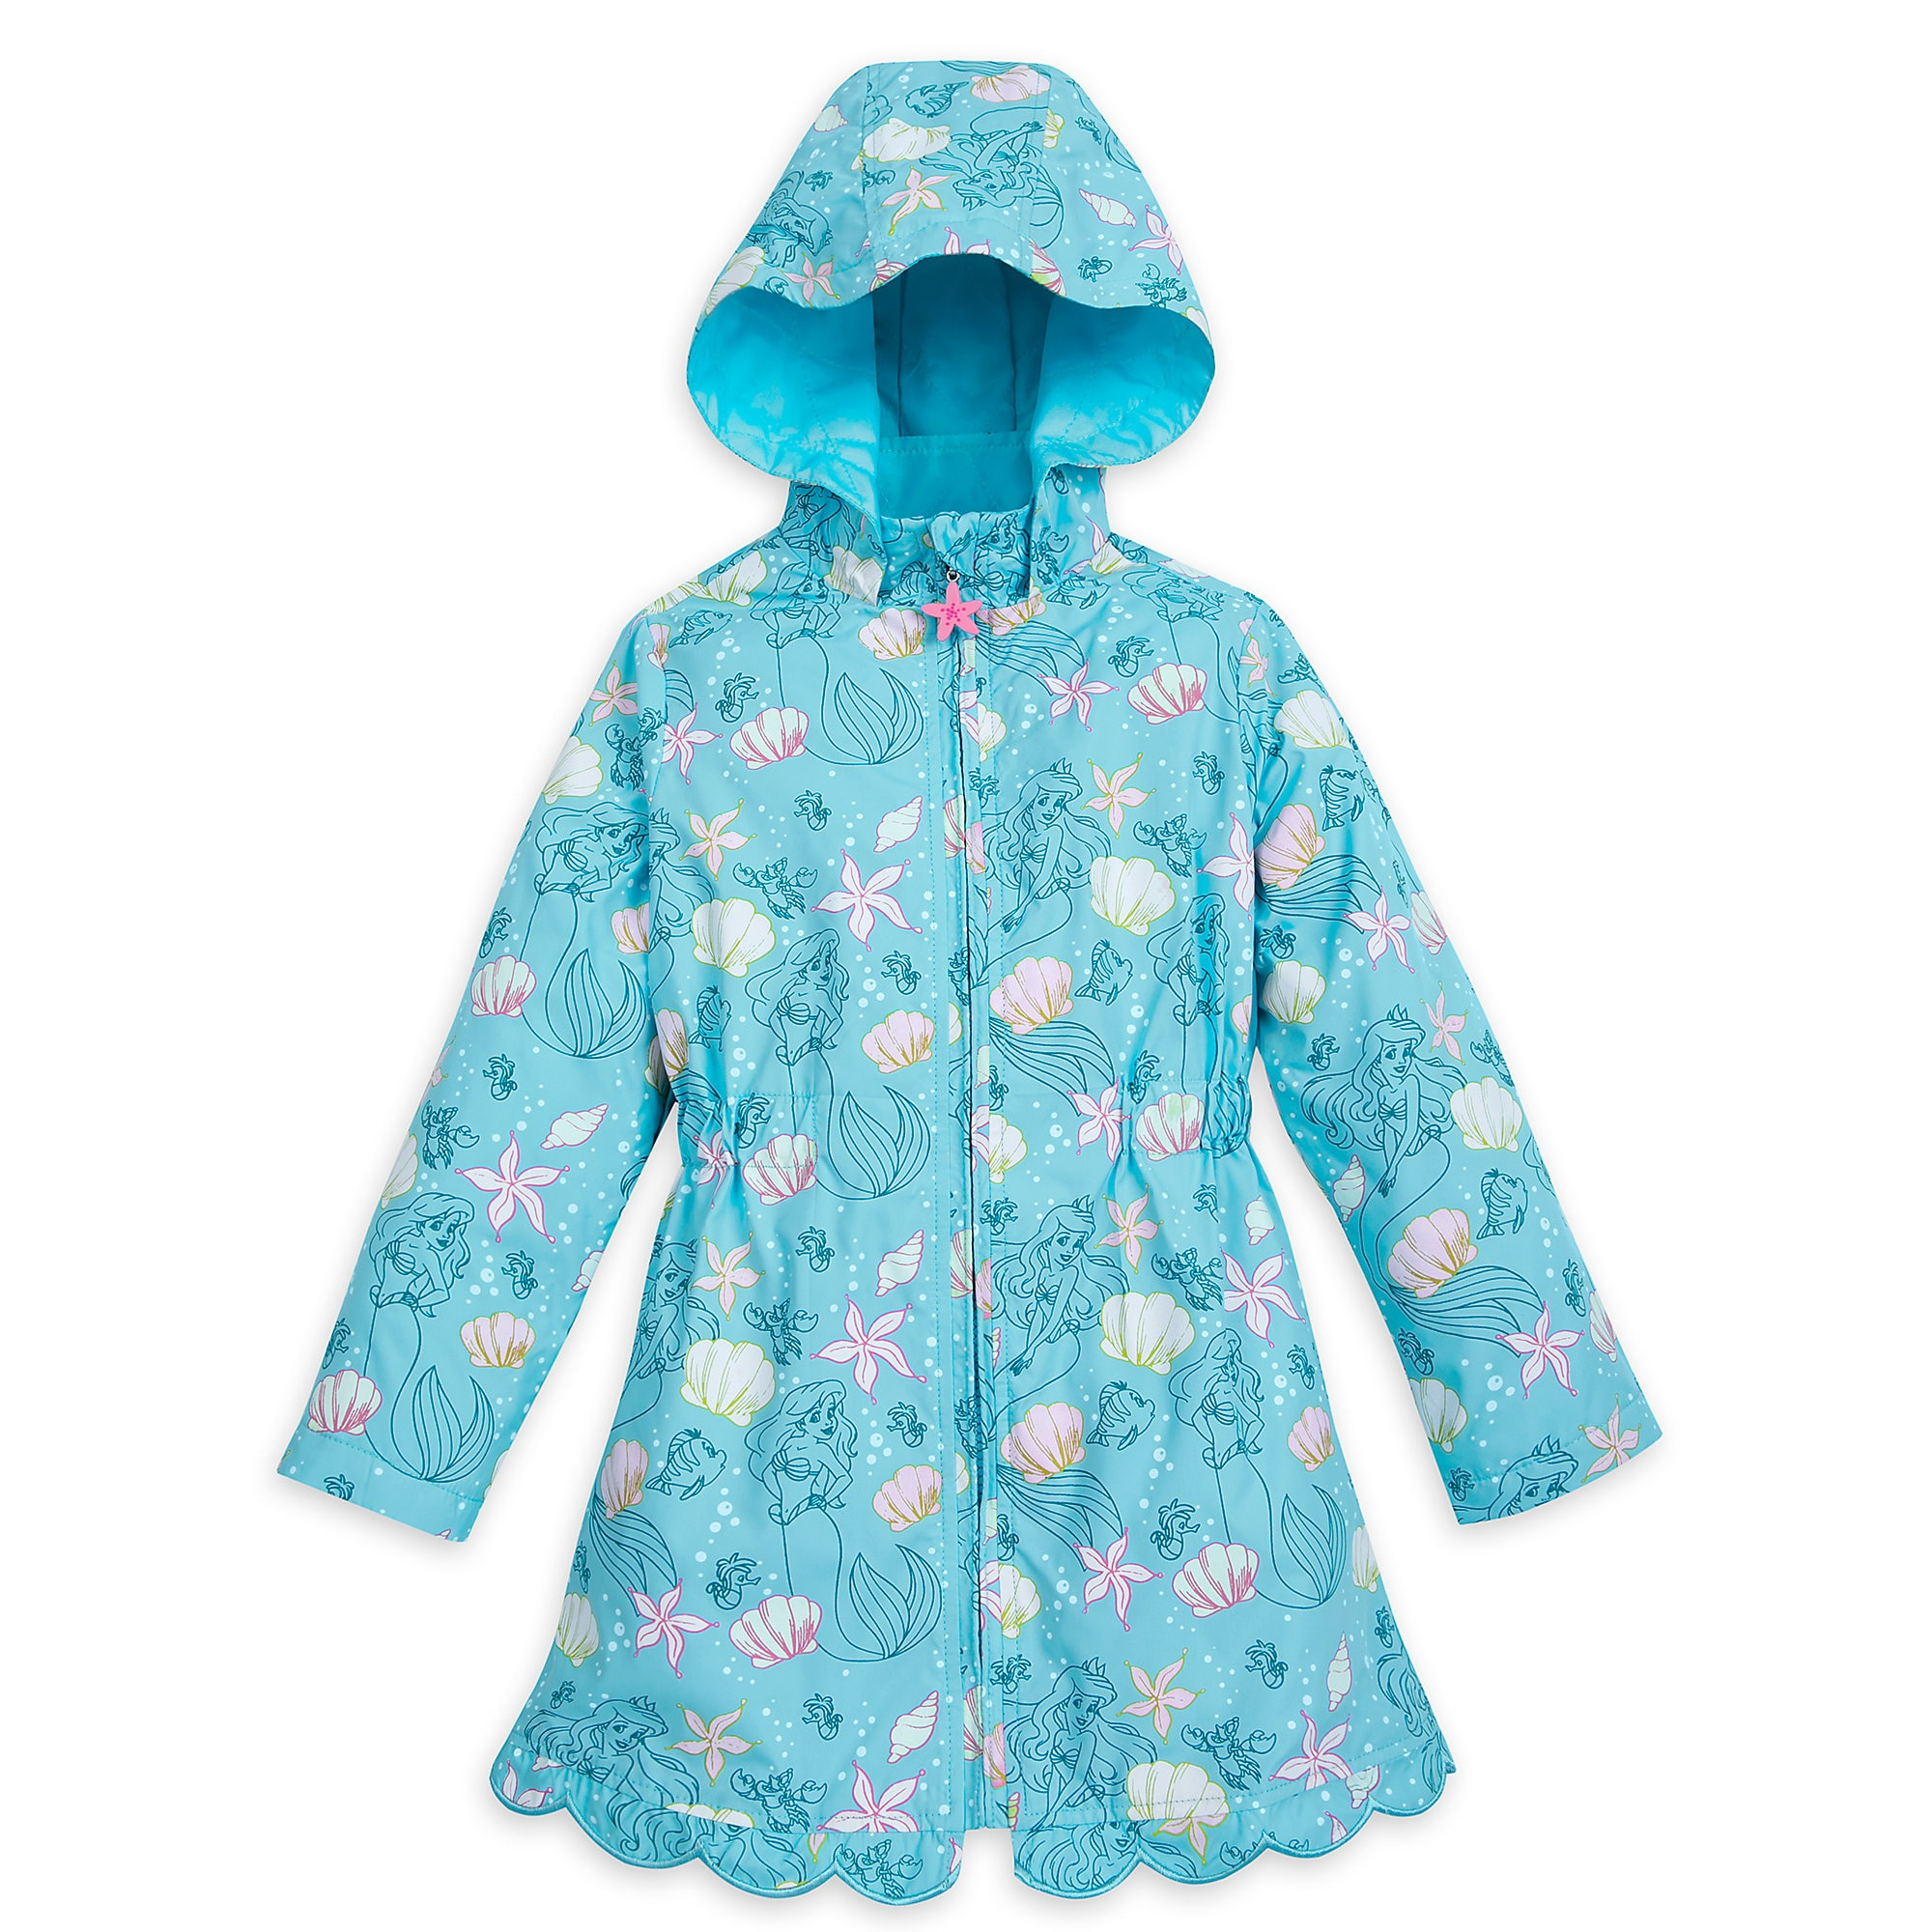 Ariel Color Changing Rain Jacket for Kids